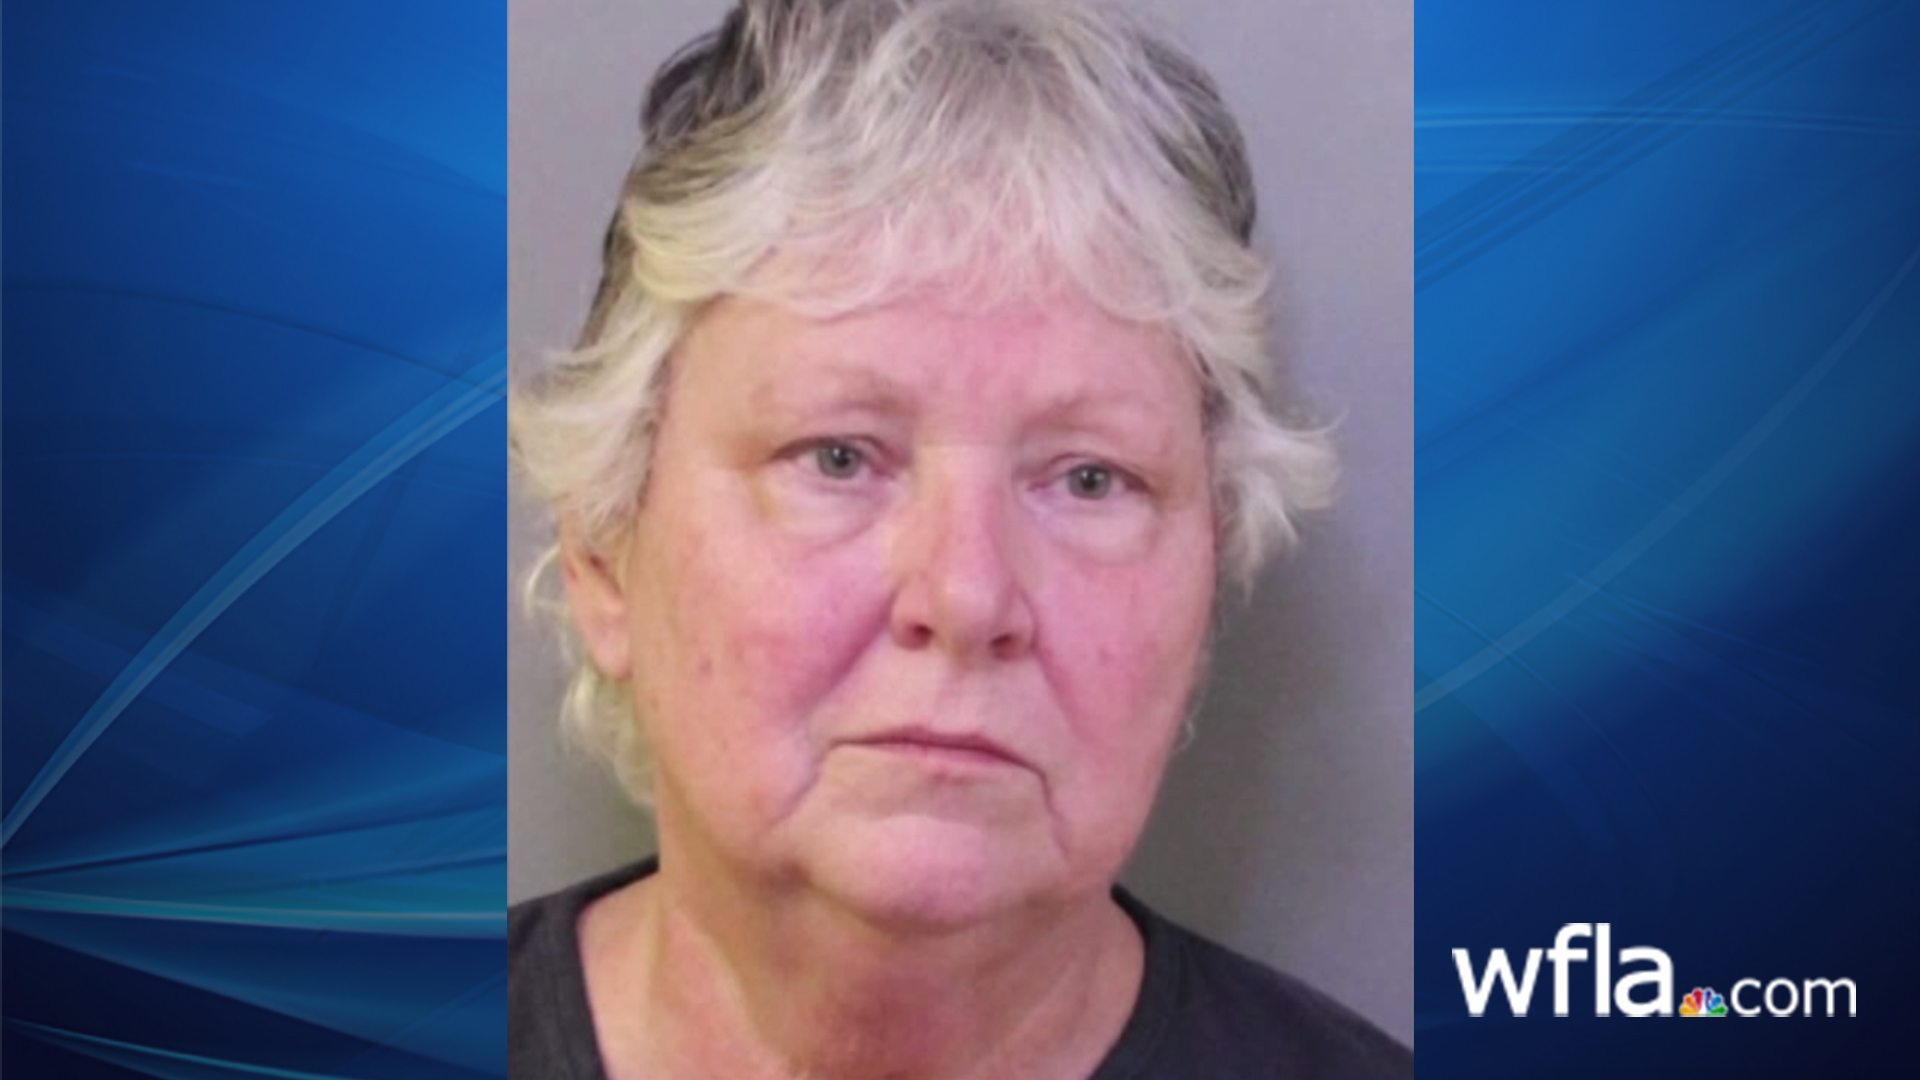 Florida veterinarian convicted of animal cruelty charges